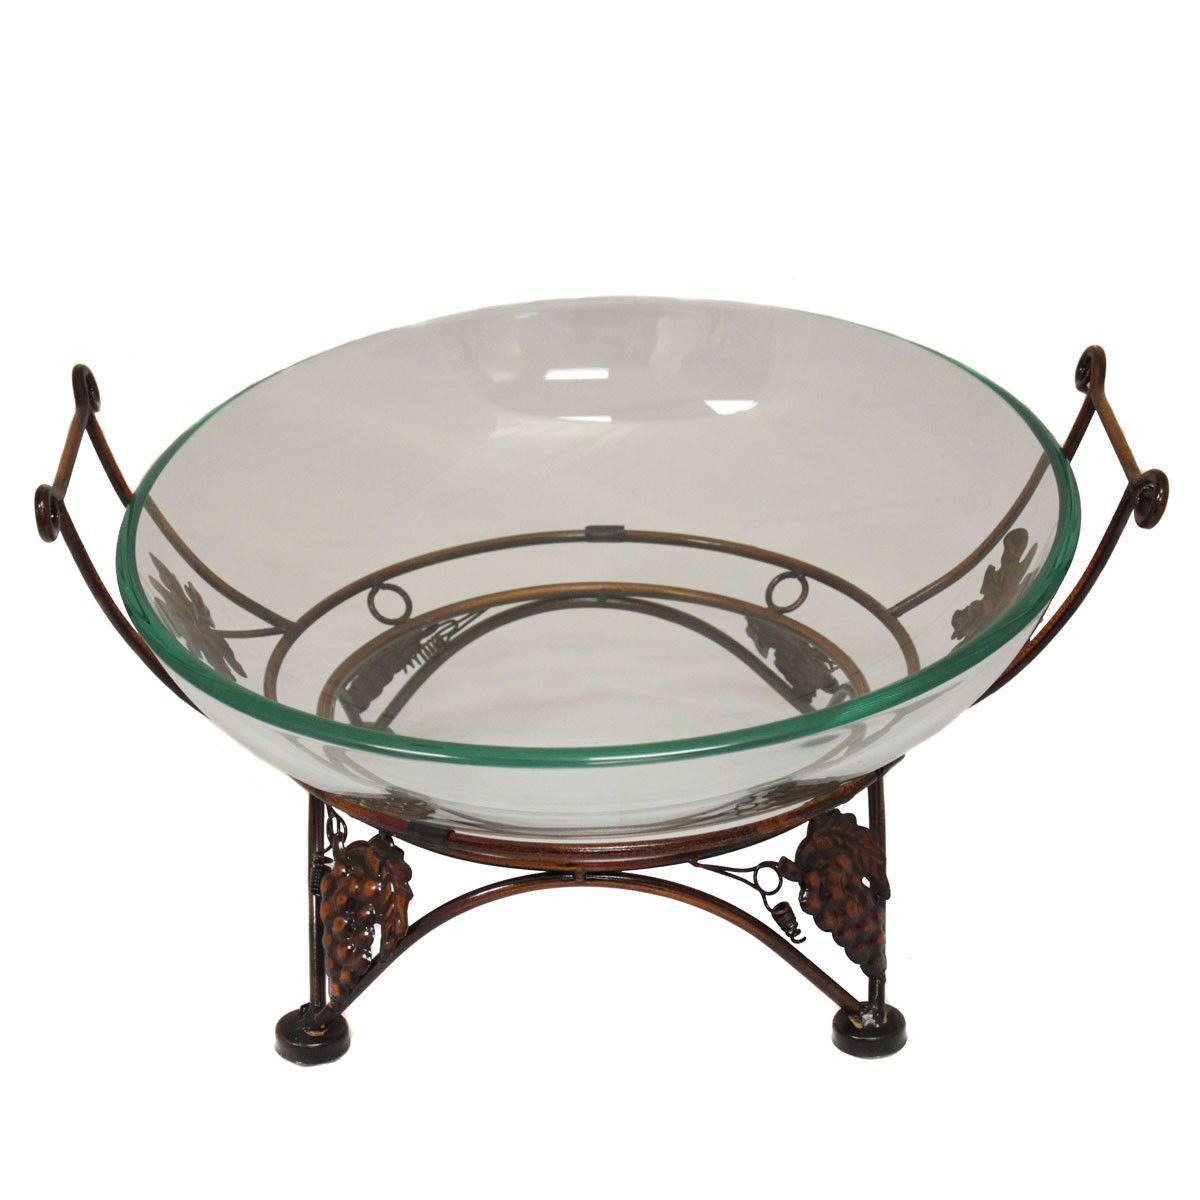 Terrific Urban Glass Decorative Bowl With Grape Leaf Metal Stand Kh Gmtry Best Dining Table And Chair Ideas Images Gmtryco